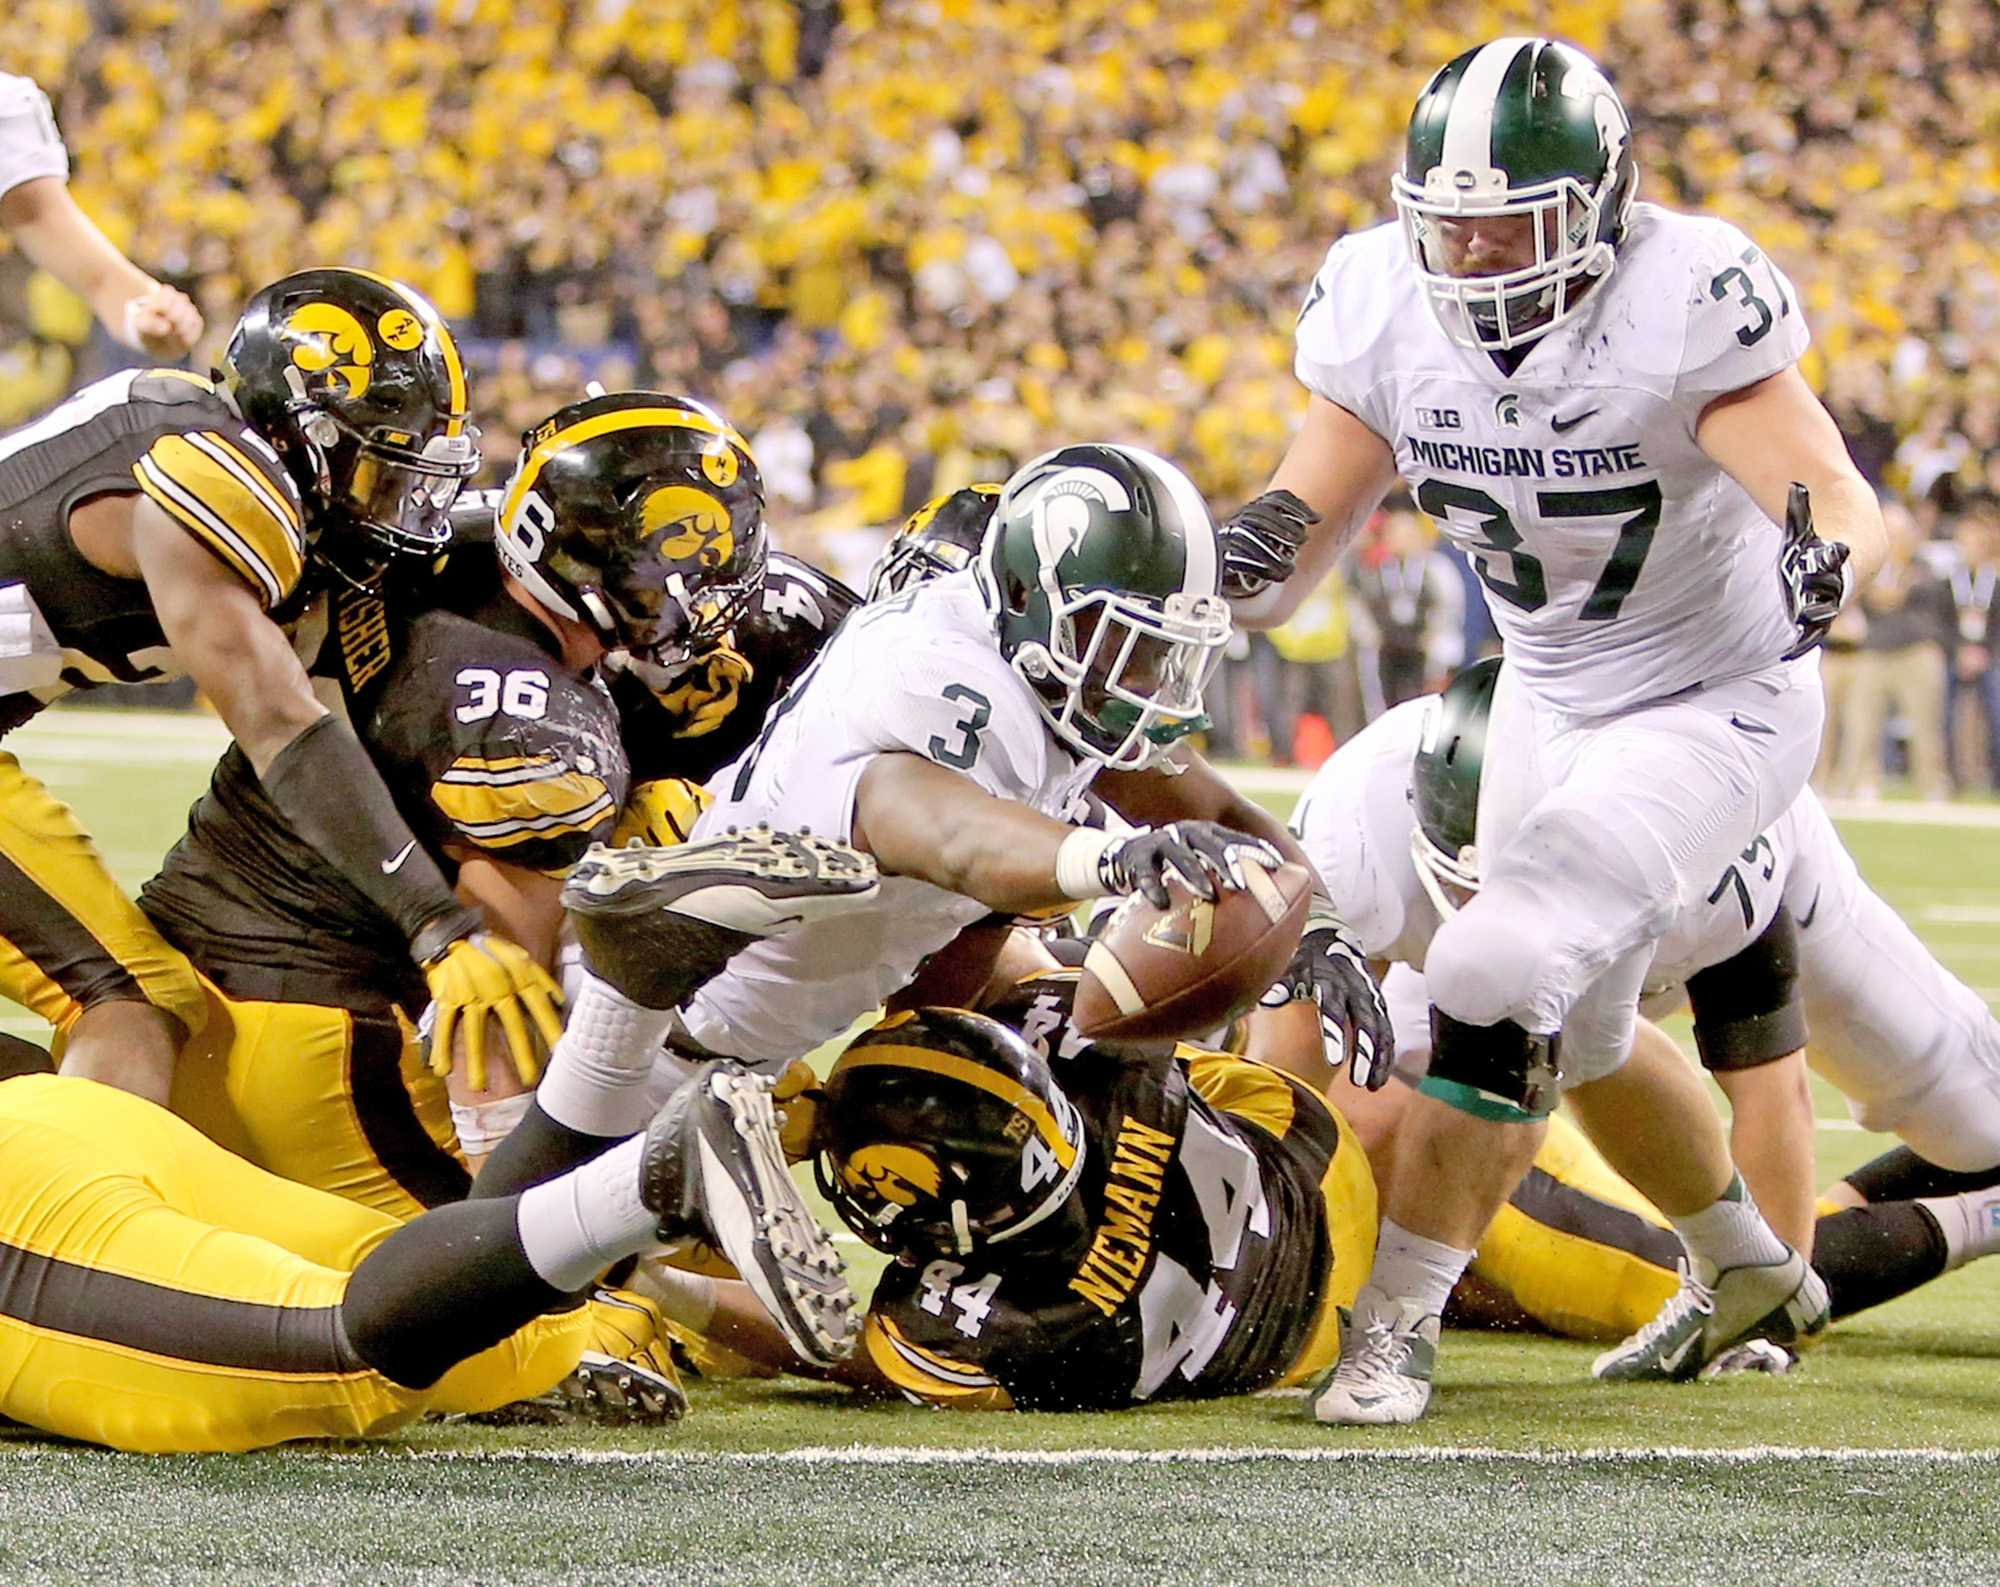 A+game-winning+drive+for+the+ages+allows+Michigan+State+to+reach+for+the+playoff%2C+and+continue+its+late-season+resurgence.+The+victory+over+Iowa+sets+up+yet+another+Big+Ten-SEC+playoff+showdown+with+Alabama.